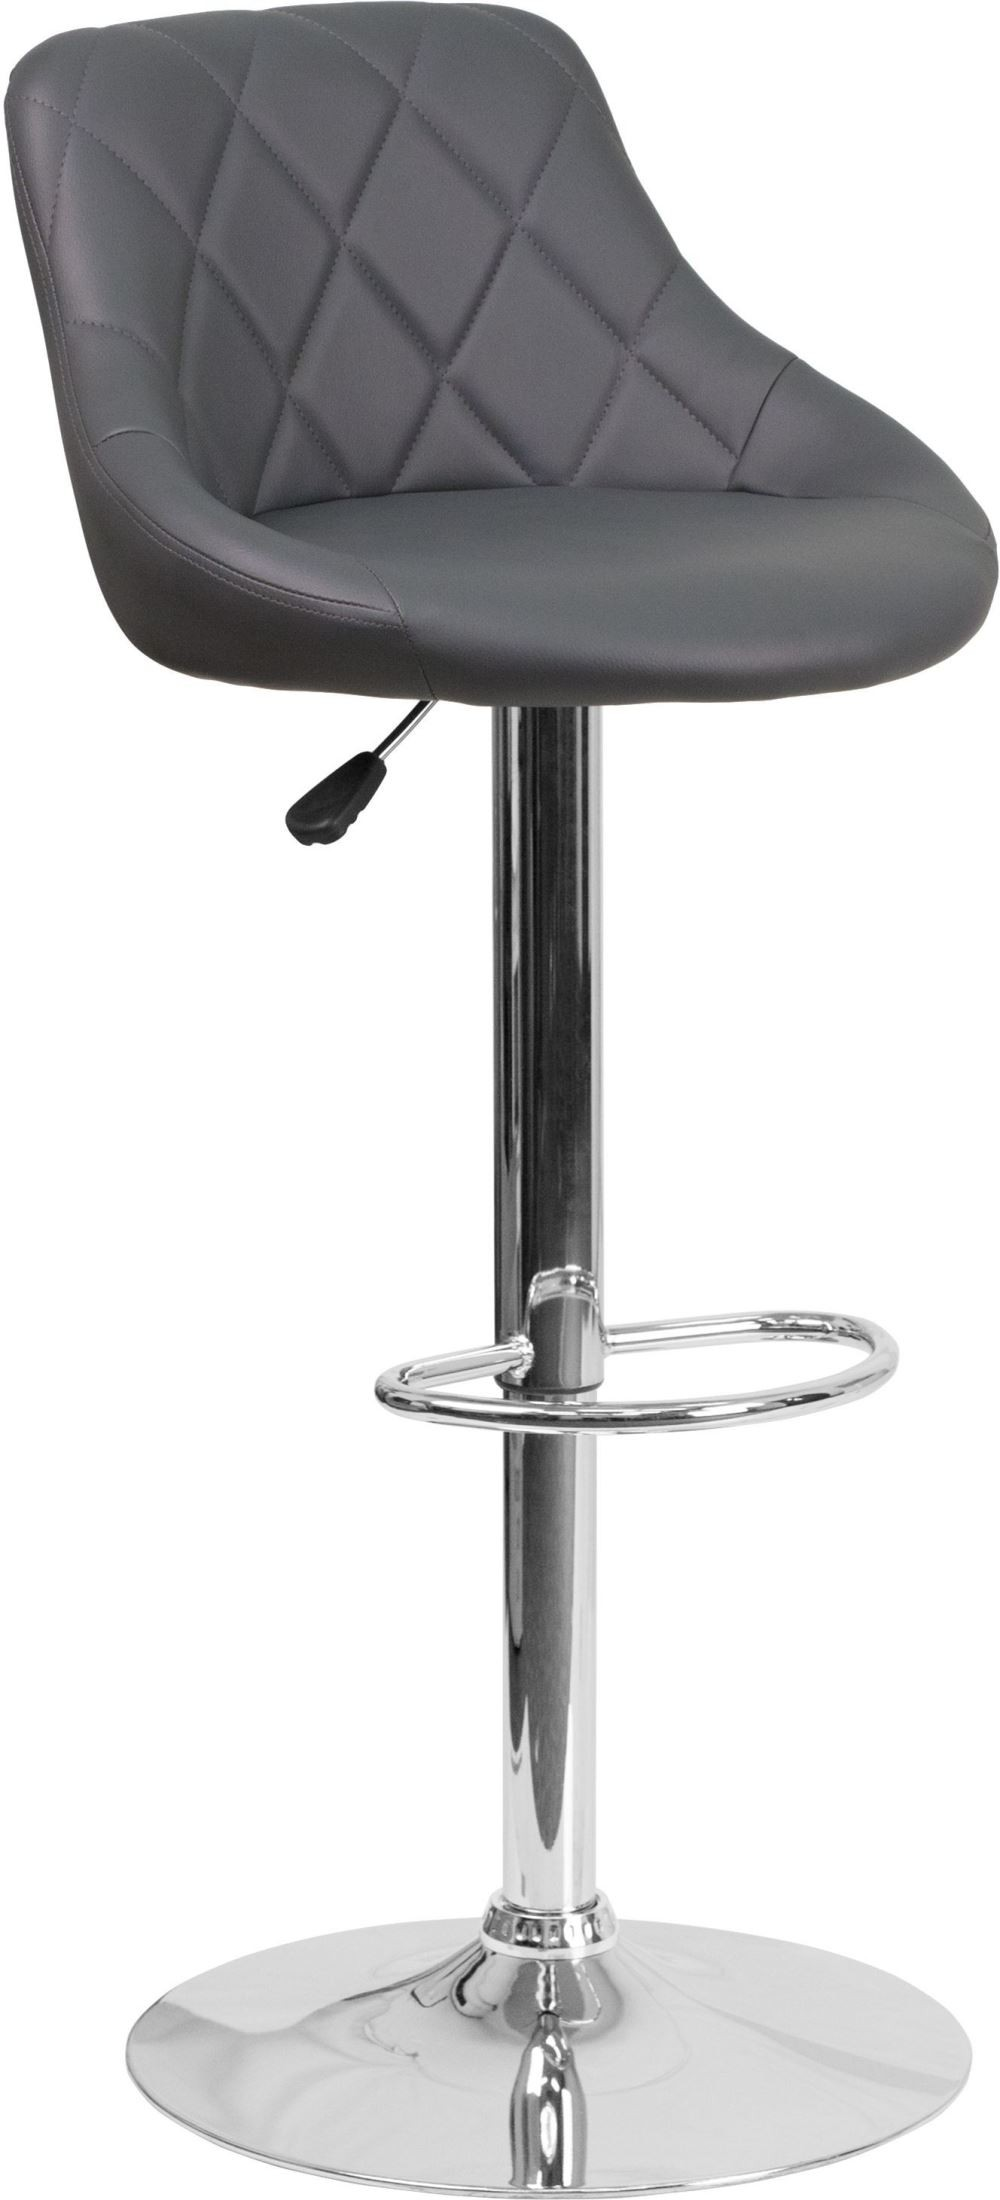 Contemporary Gray Vinyl Bucket Seat Adjustable Height  : ch 82028a gy gg from colemanfurniture.com size 1000 x 2200 jpeg 154kB